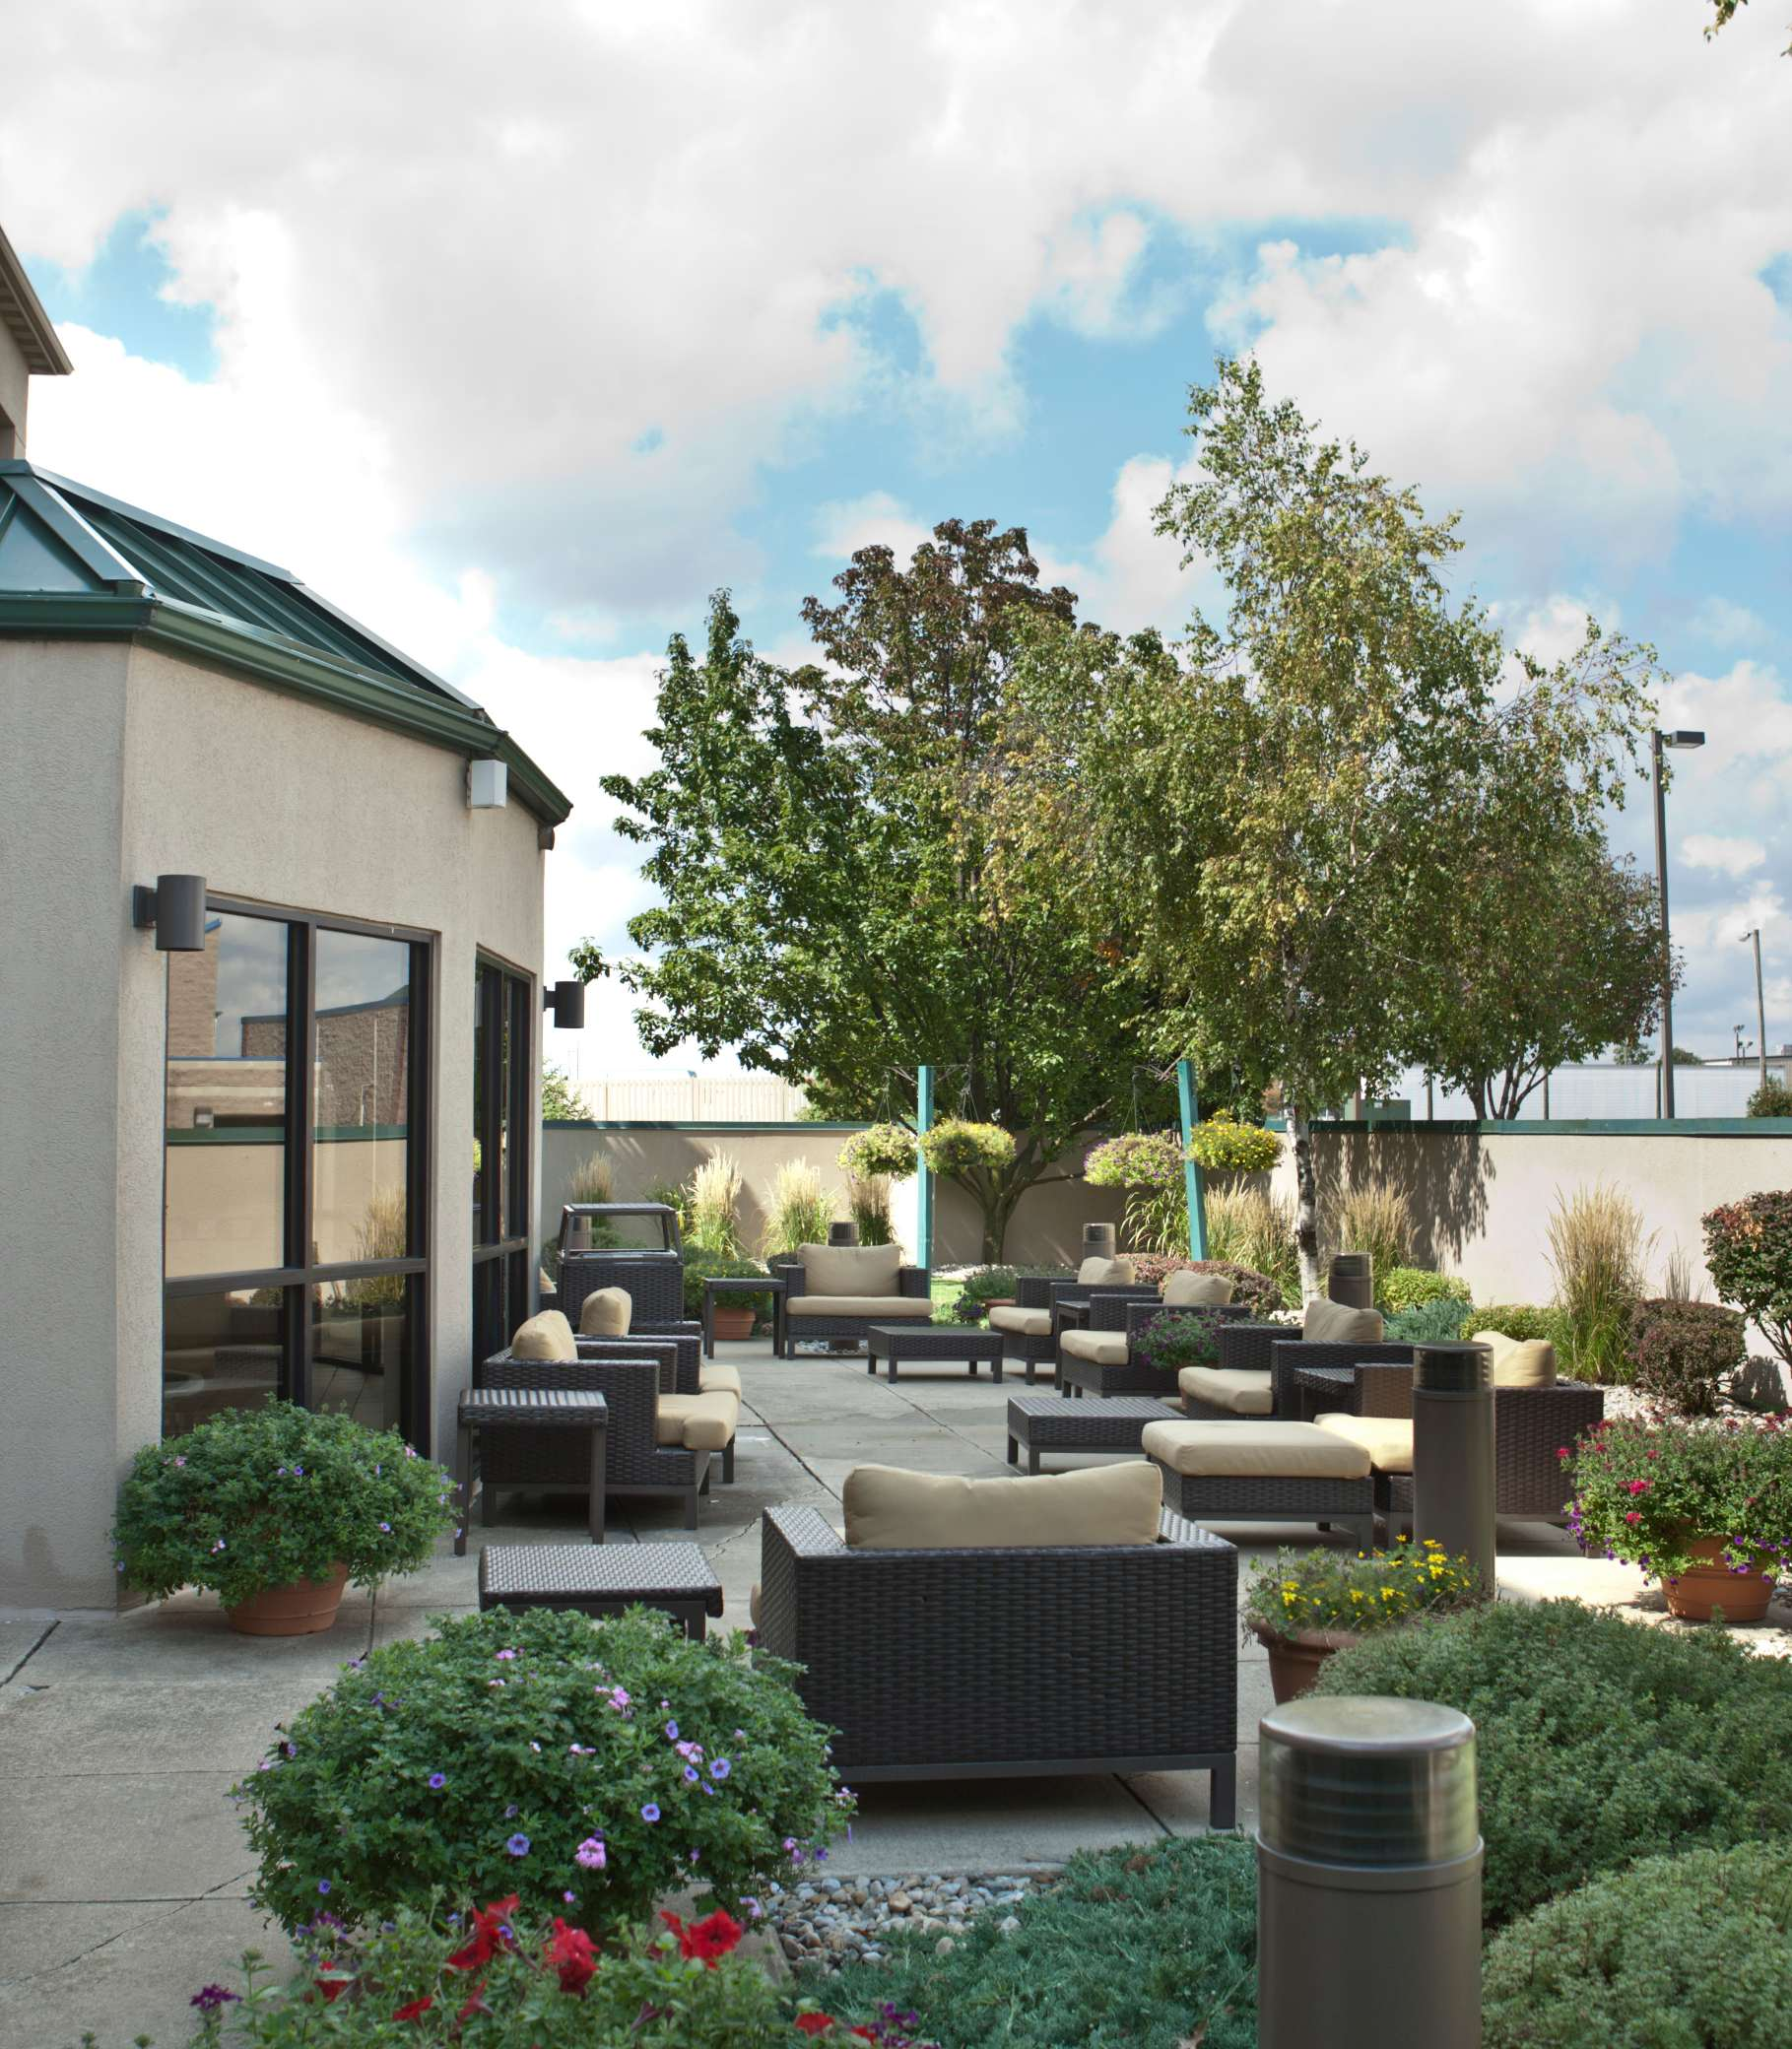 Courtyard by Marriott Champaign image 10